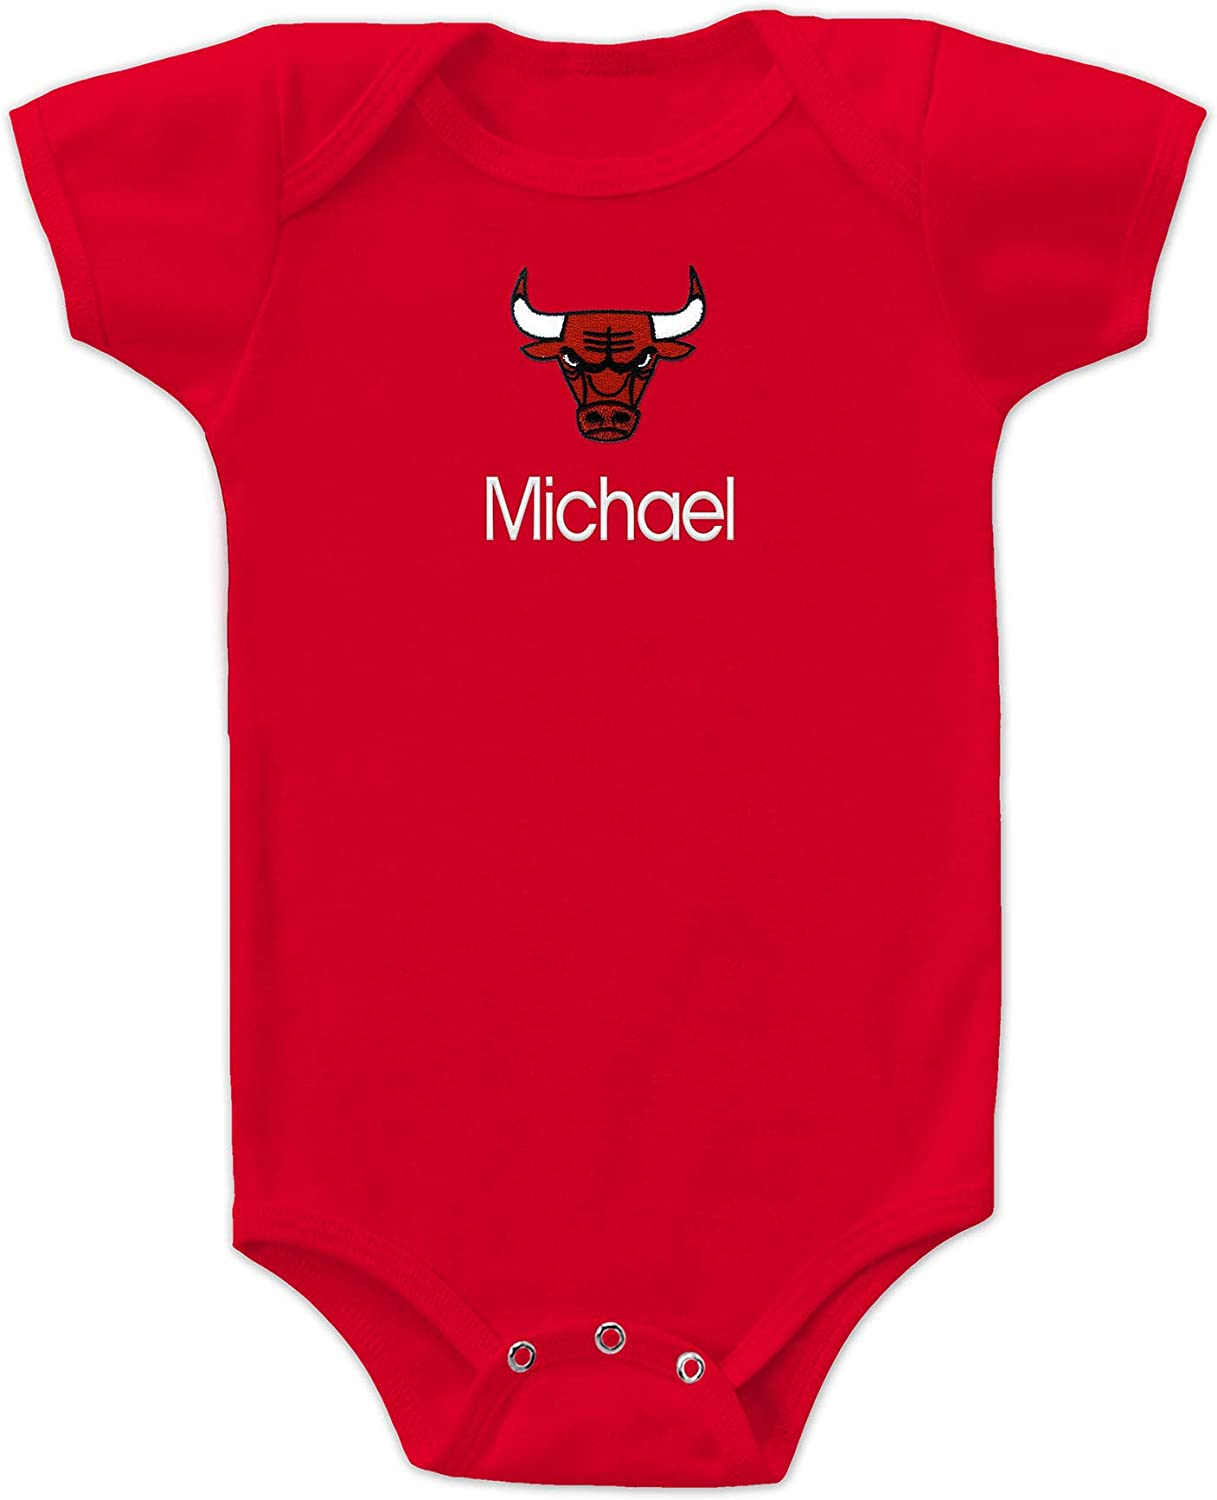 Chicago Bulls Custom Baby Bodysuit - Personalized Baby Name Embroidery